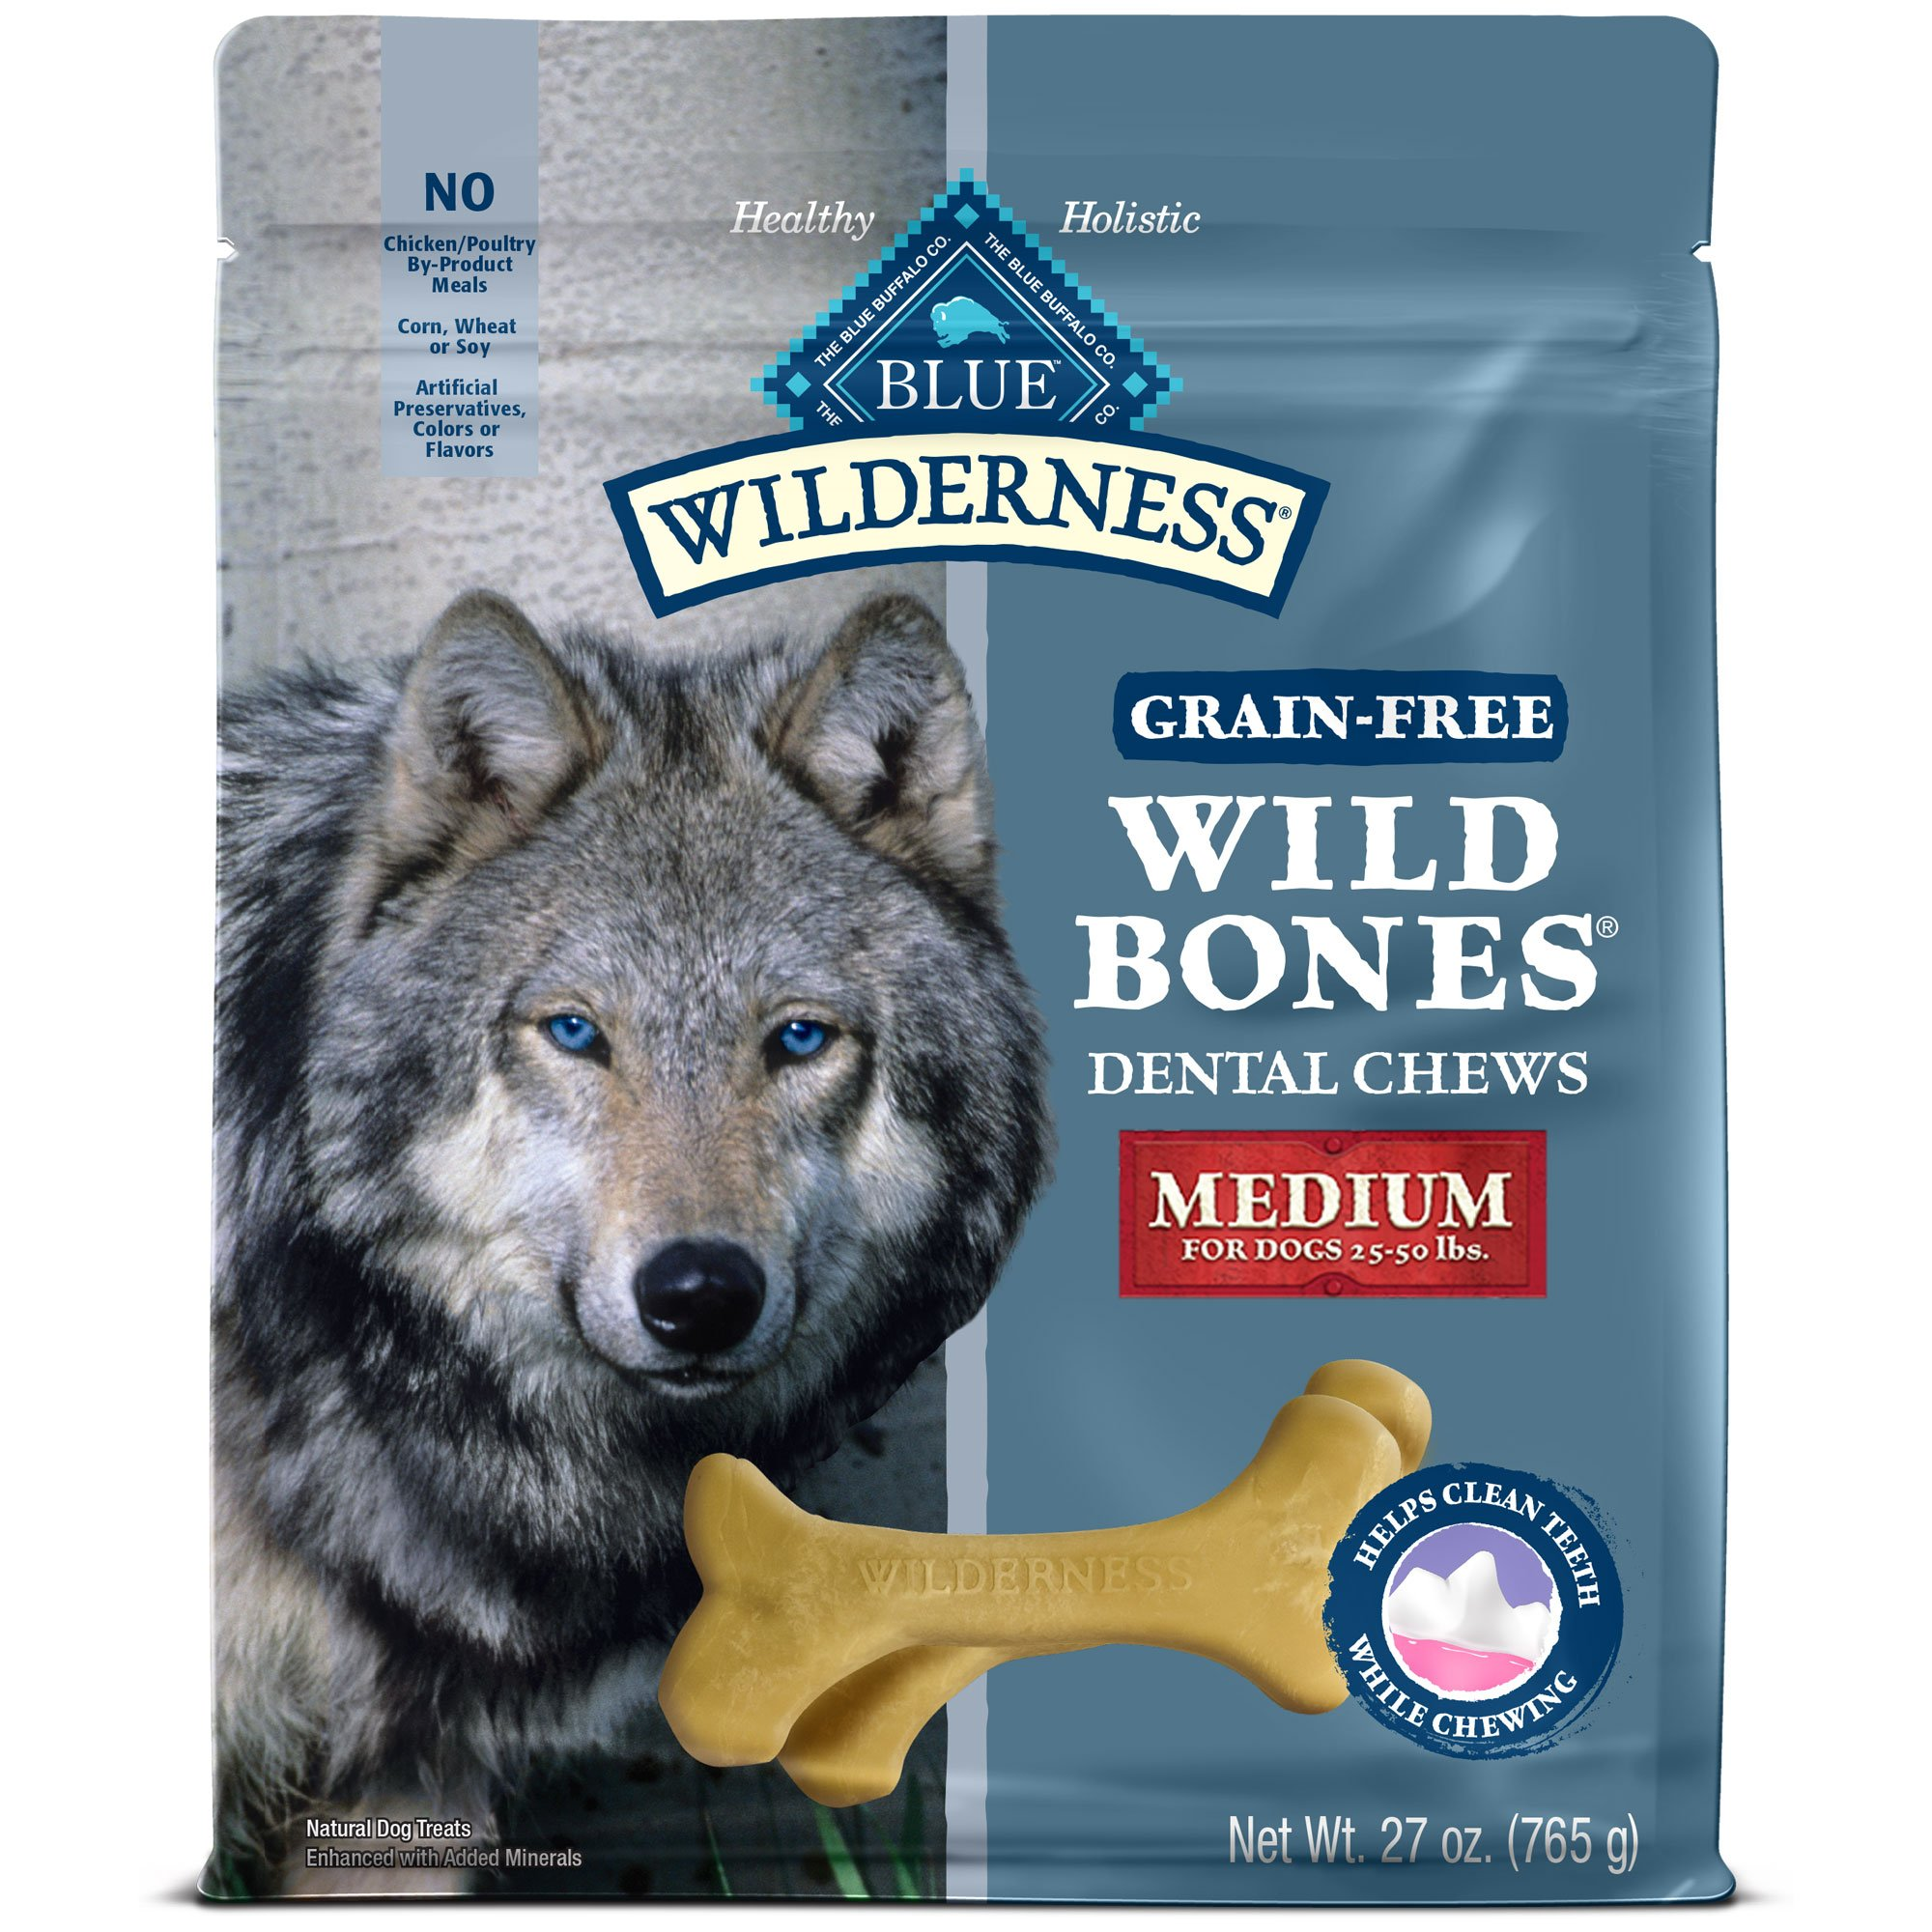 Blue Buffalo Wild Bones Dog Chew Regular 27 Oz Dog Treats Grain